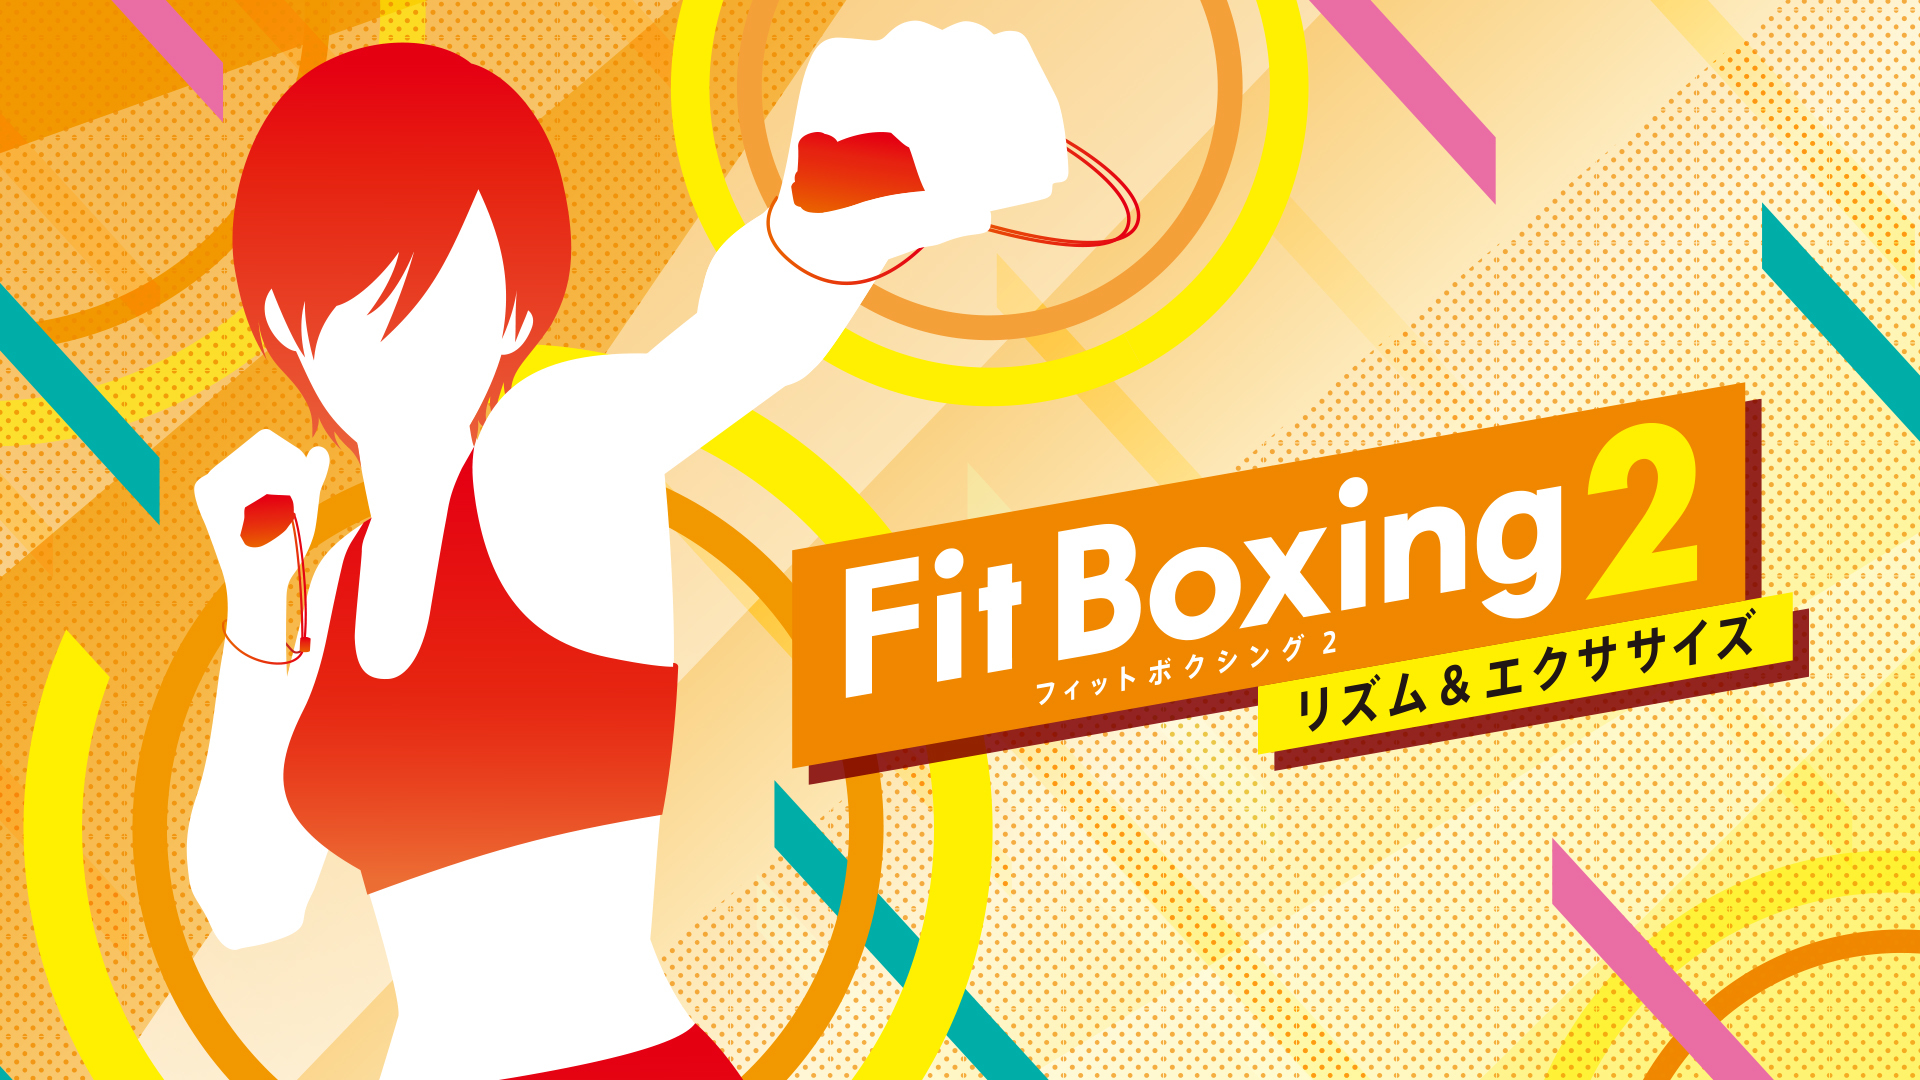 Nintendo Switch ソフト「FitBoxing 2」 (C)Imagineer Co., Ltd.